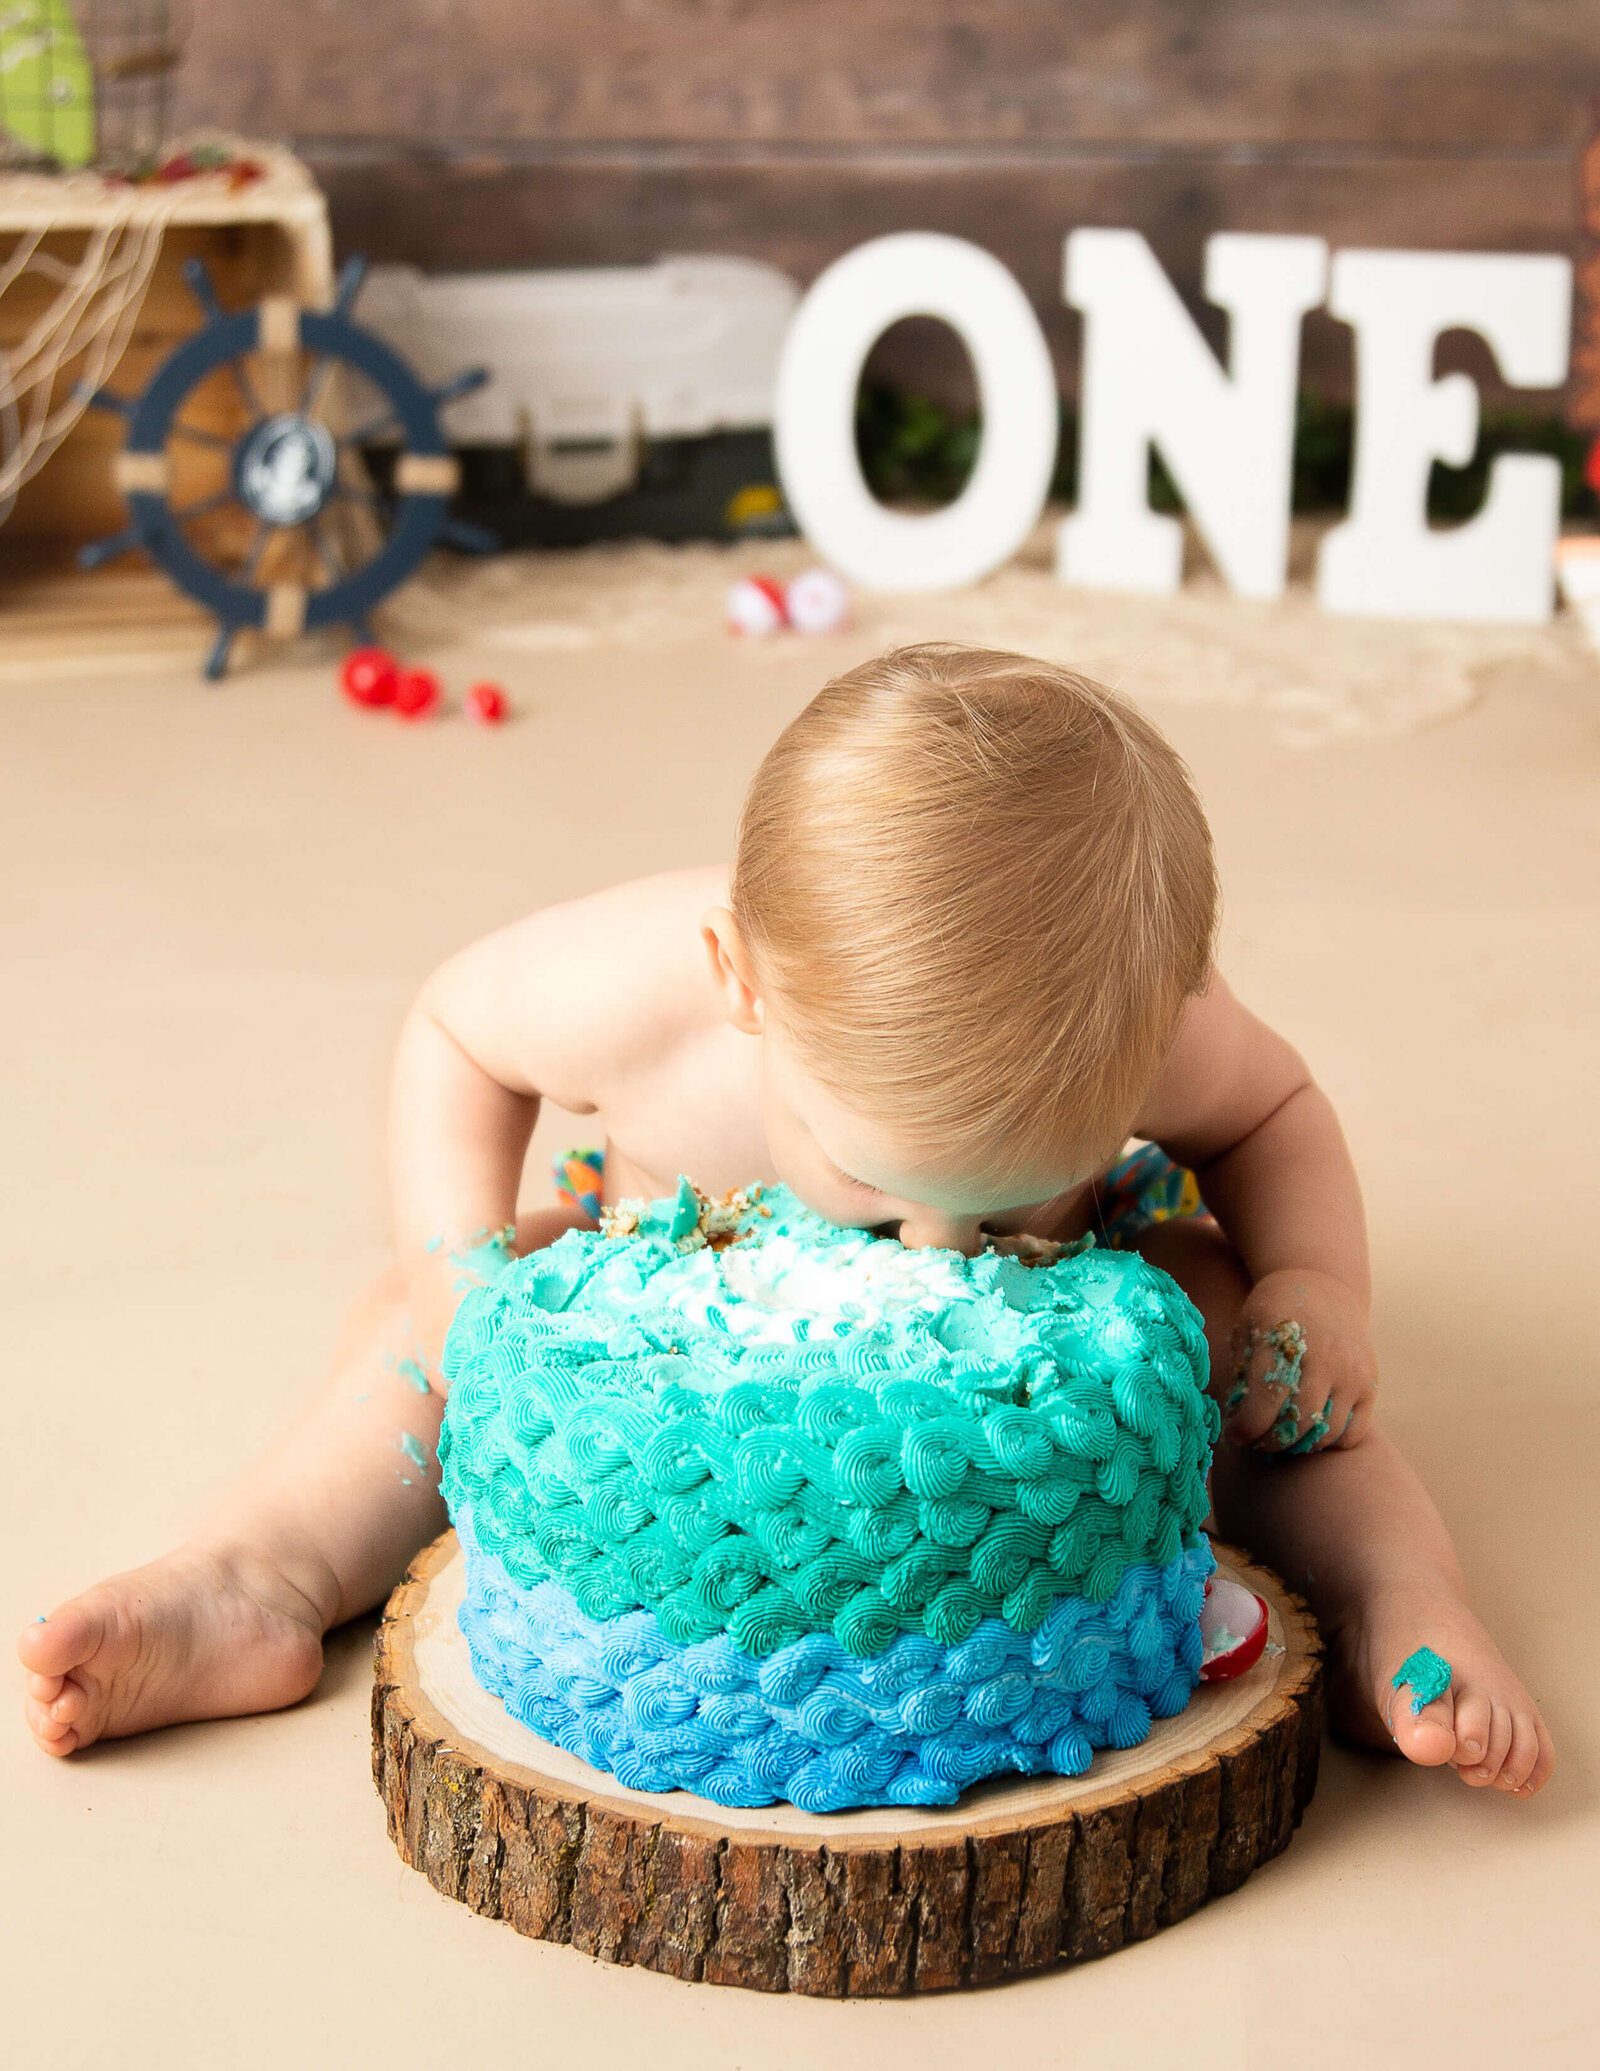 One year old cake smash at our in-home studio.